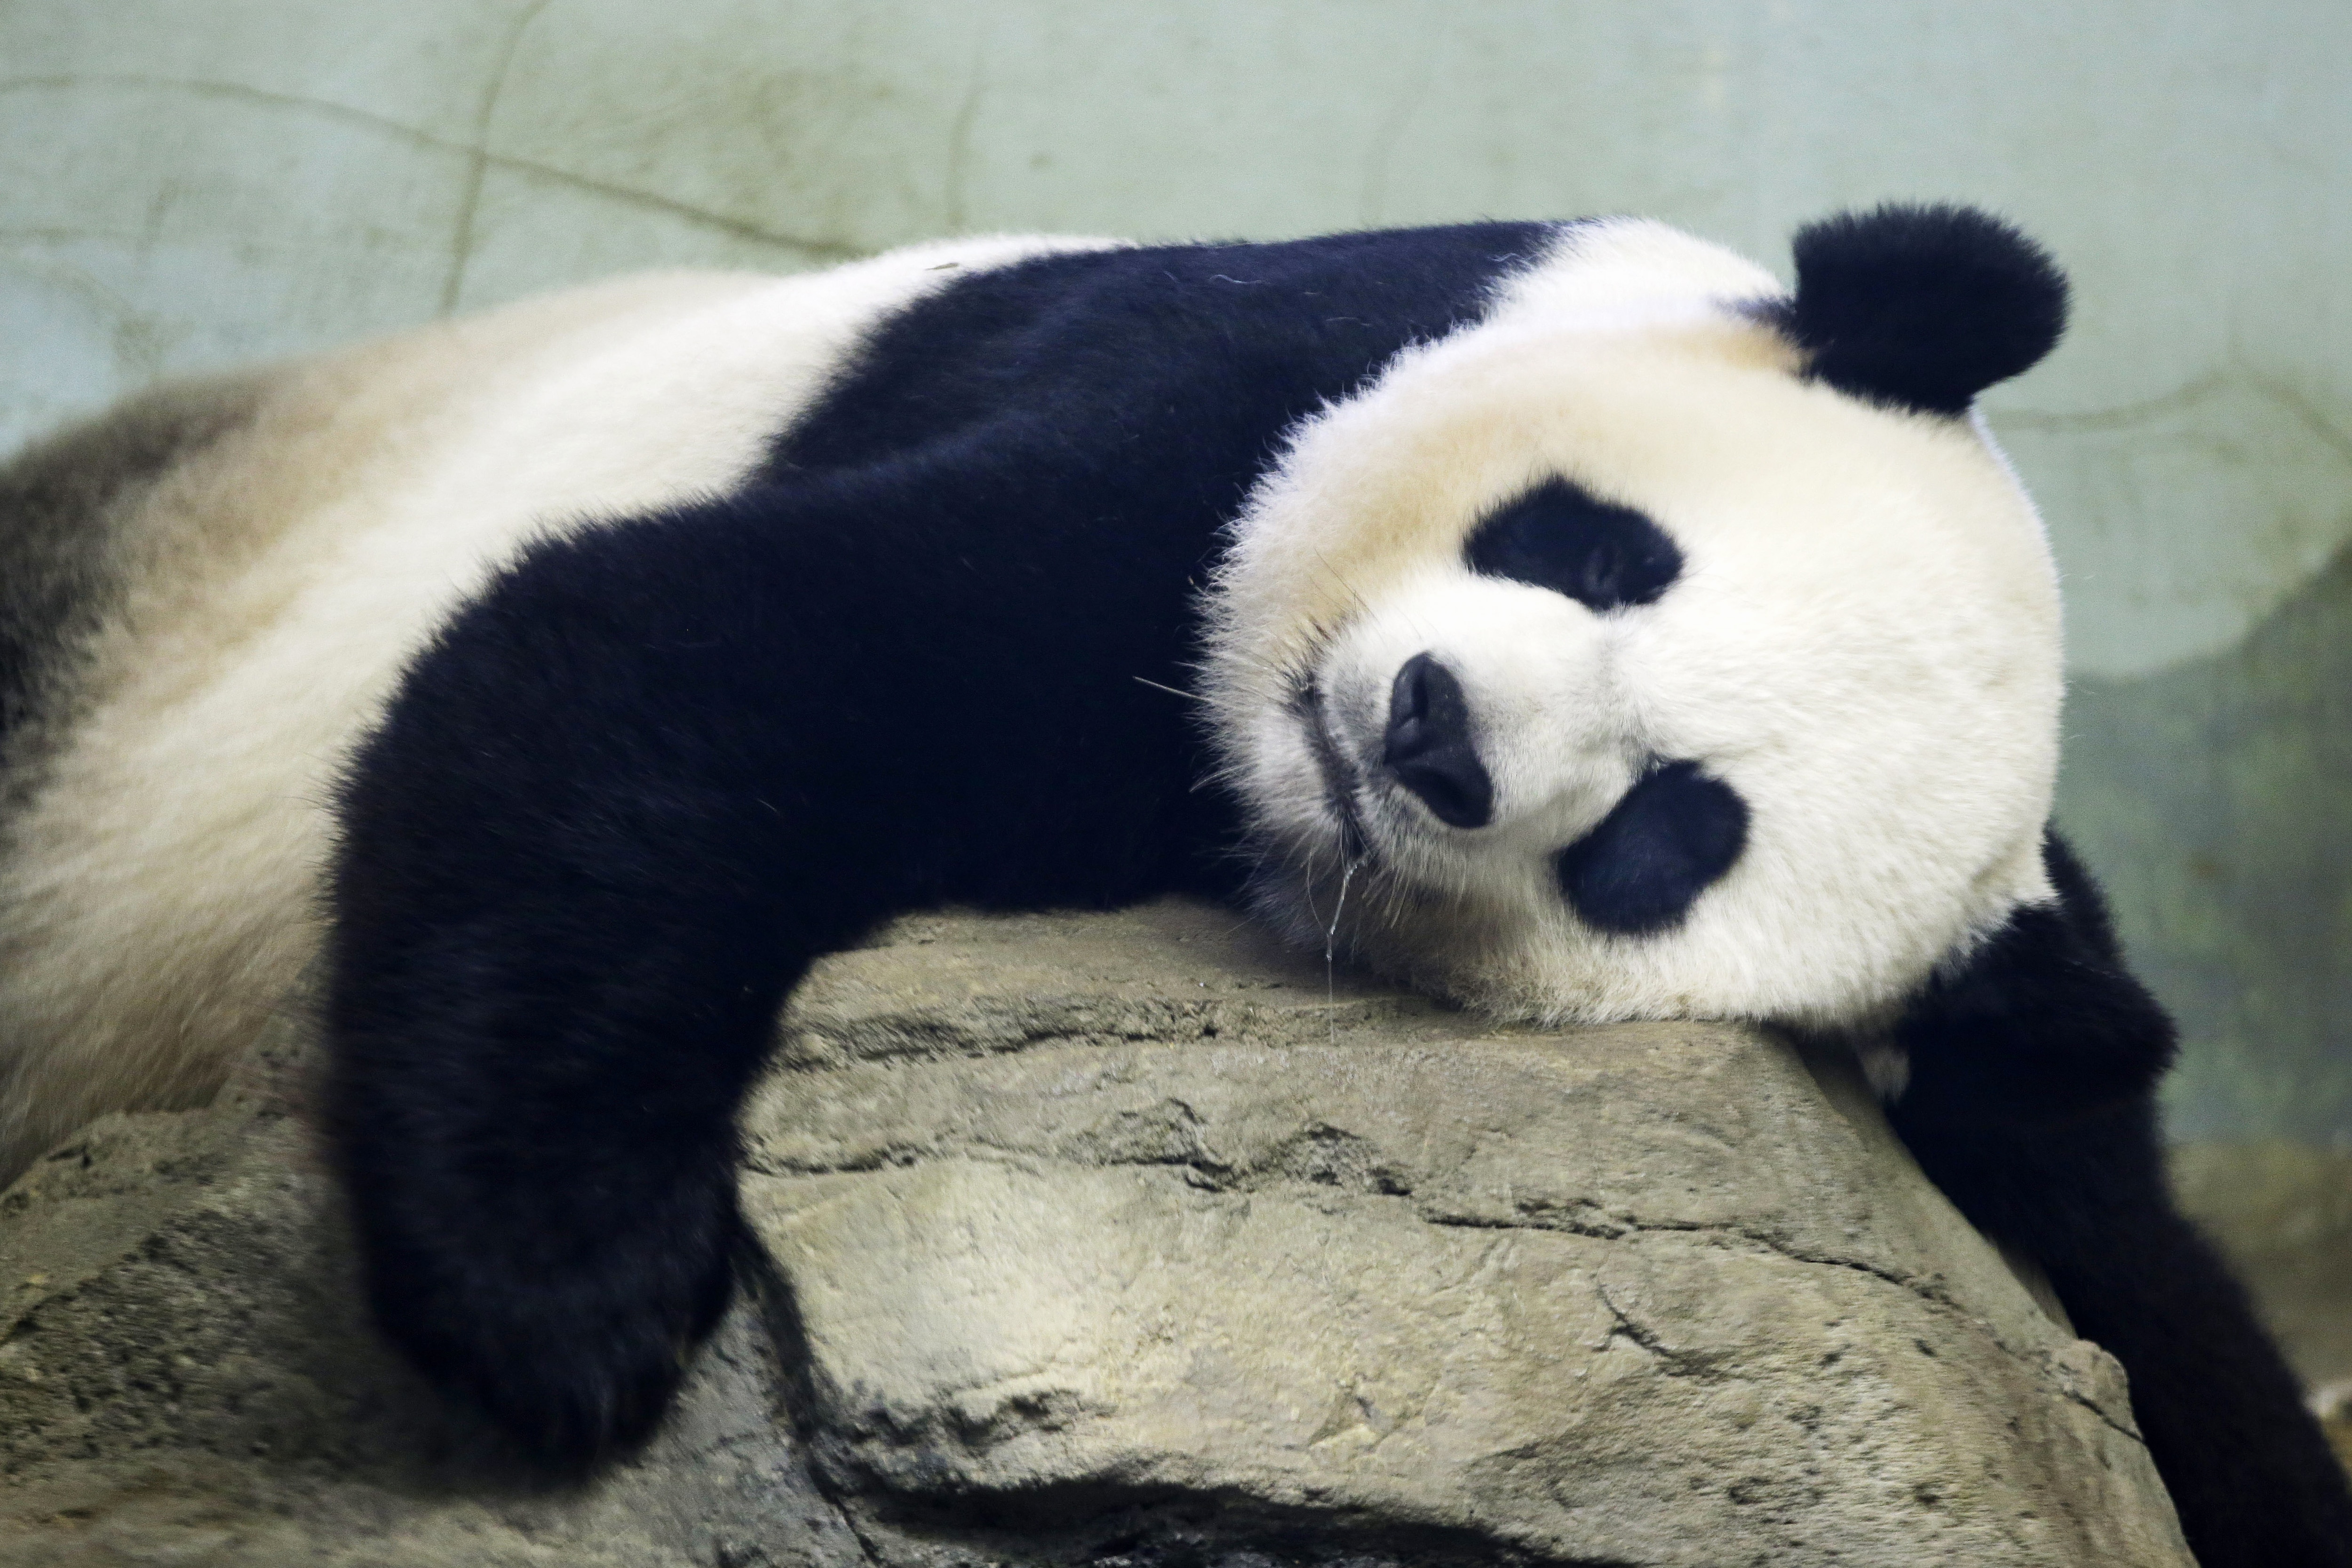 Panda lying on rock (© AP Images)